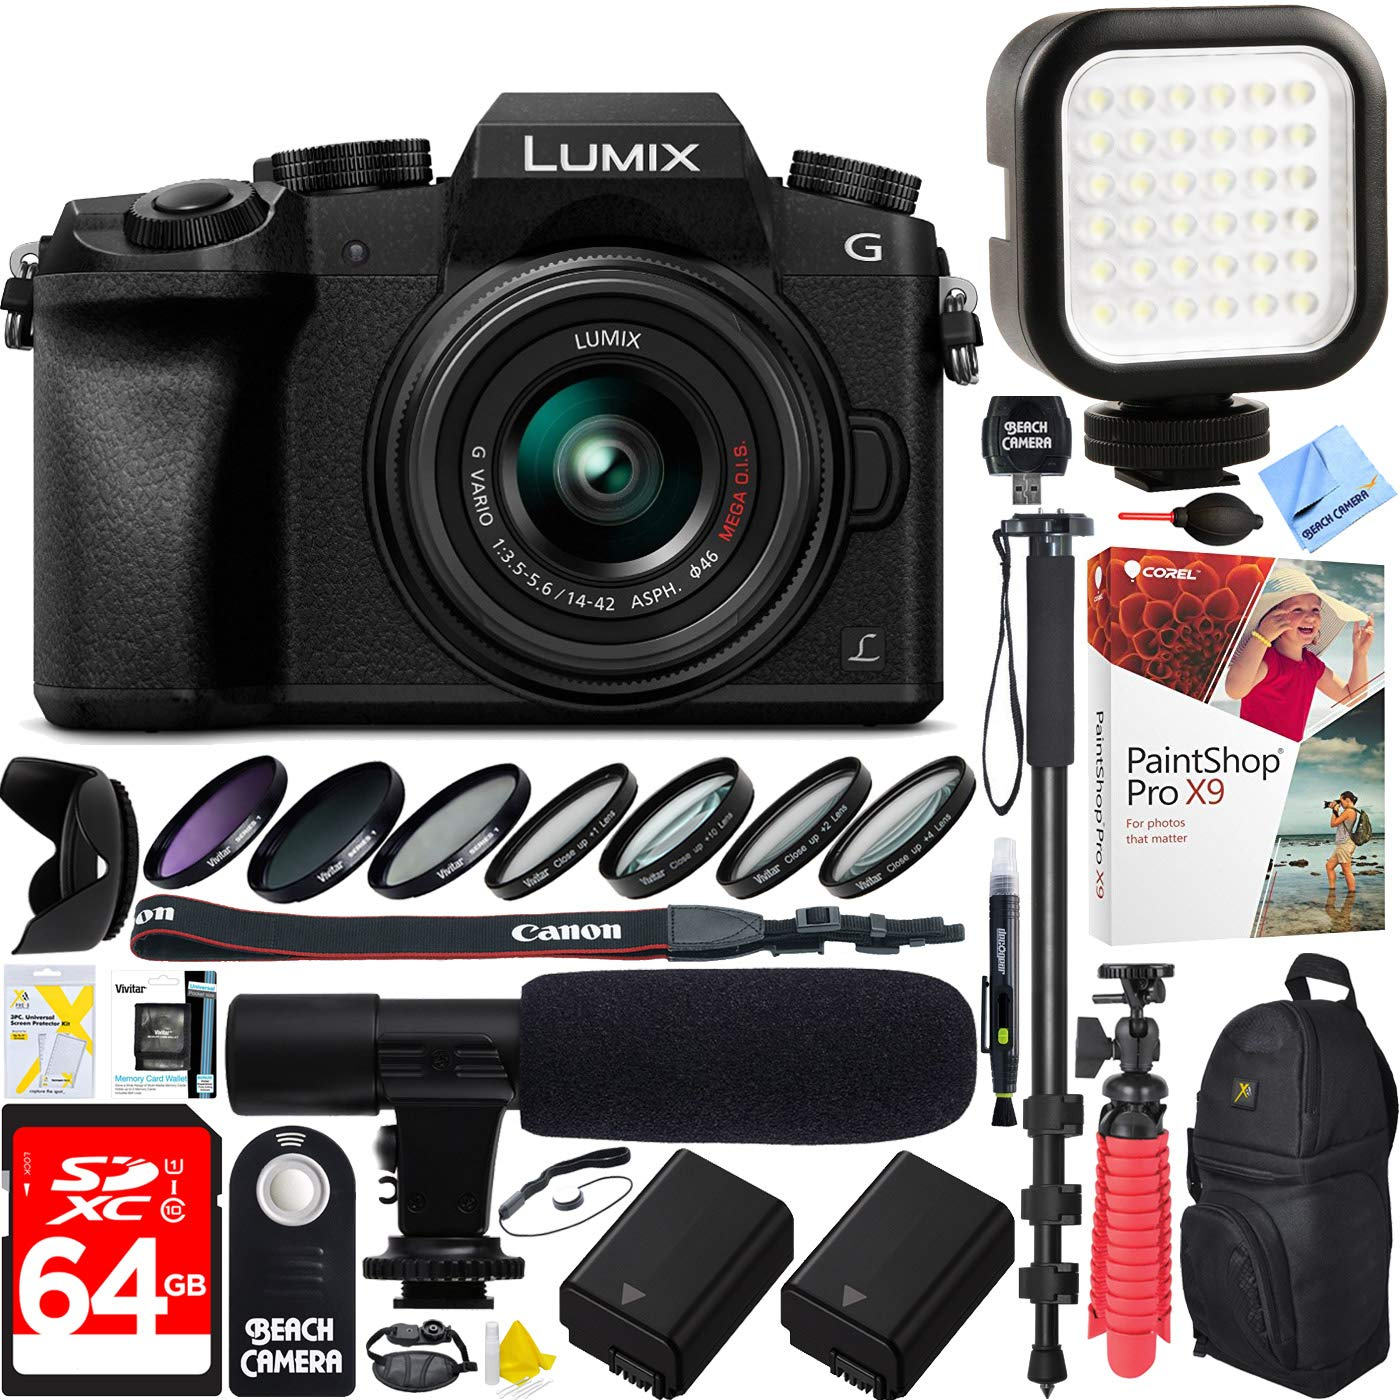 Panasonic LUMIX G7 Interchangeable Lens 4K Ultra HD Black DSLM Camera with 14-42mm Lens Bundle with 64GB Memory Card, Microphone, LED Light and Accessories (17 Items) by Panasonic